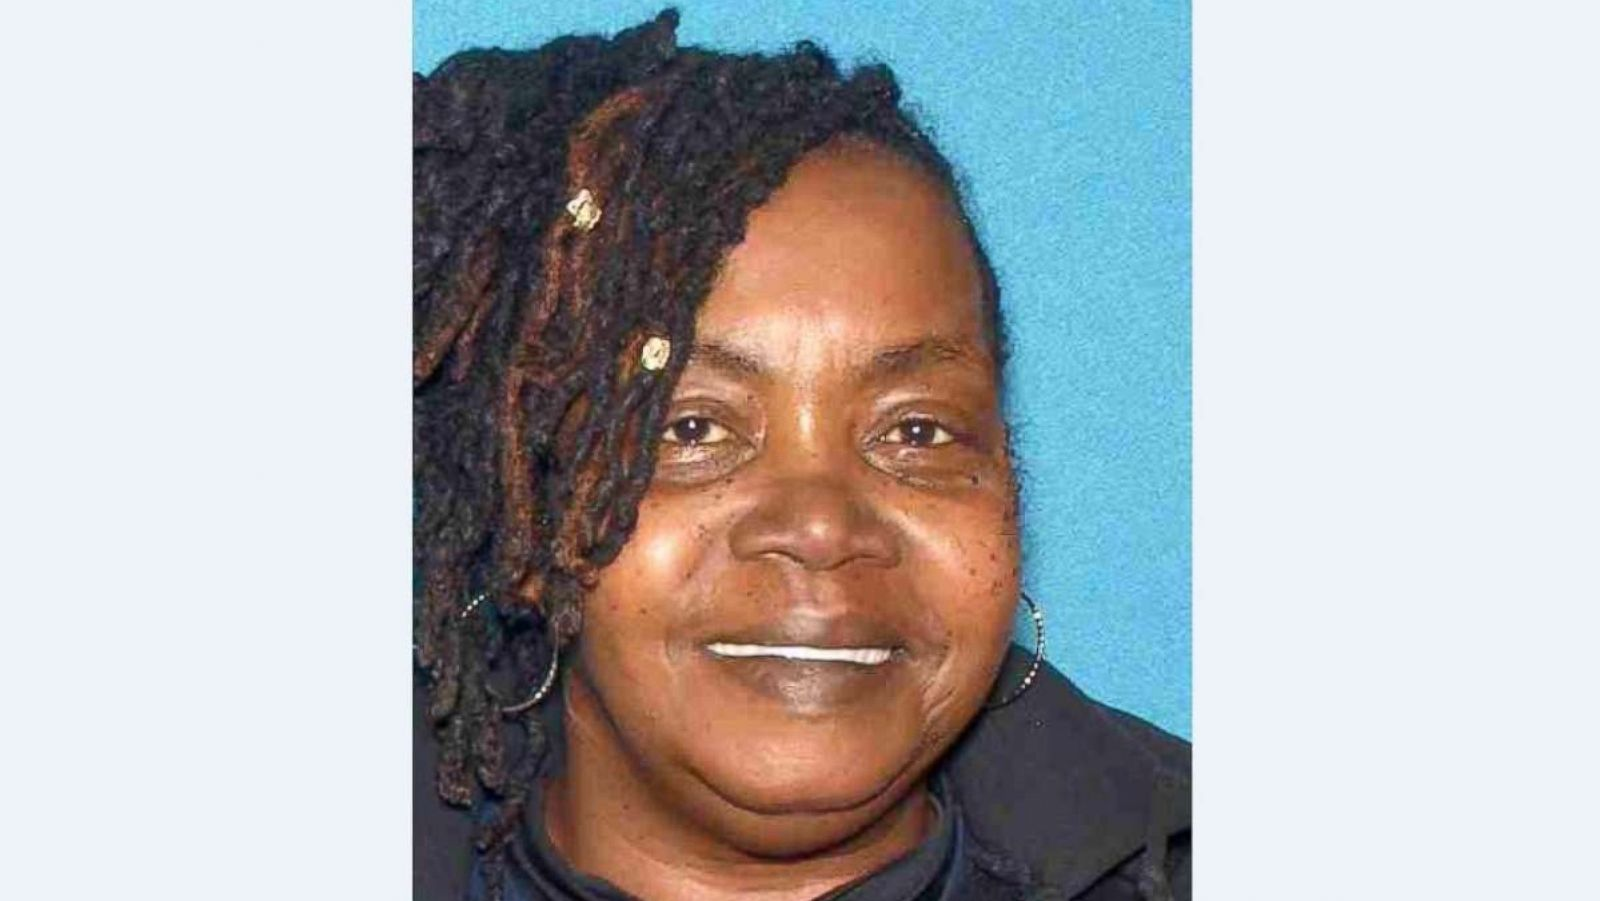 Bus driver arrested after she needed Narcan to be revived from